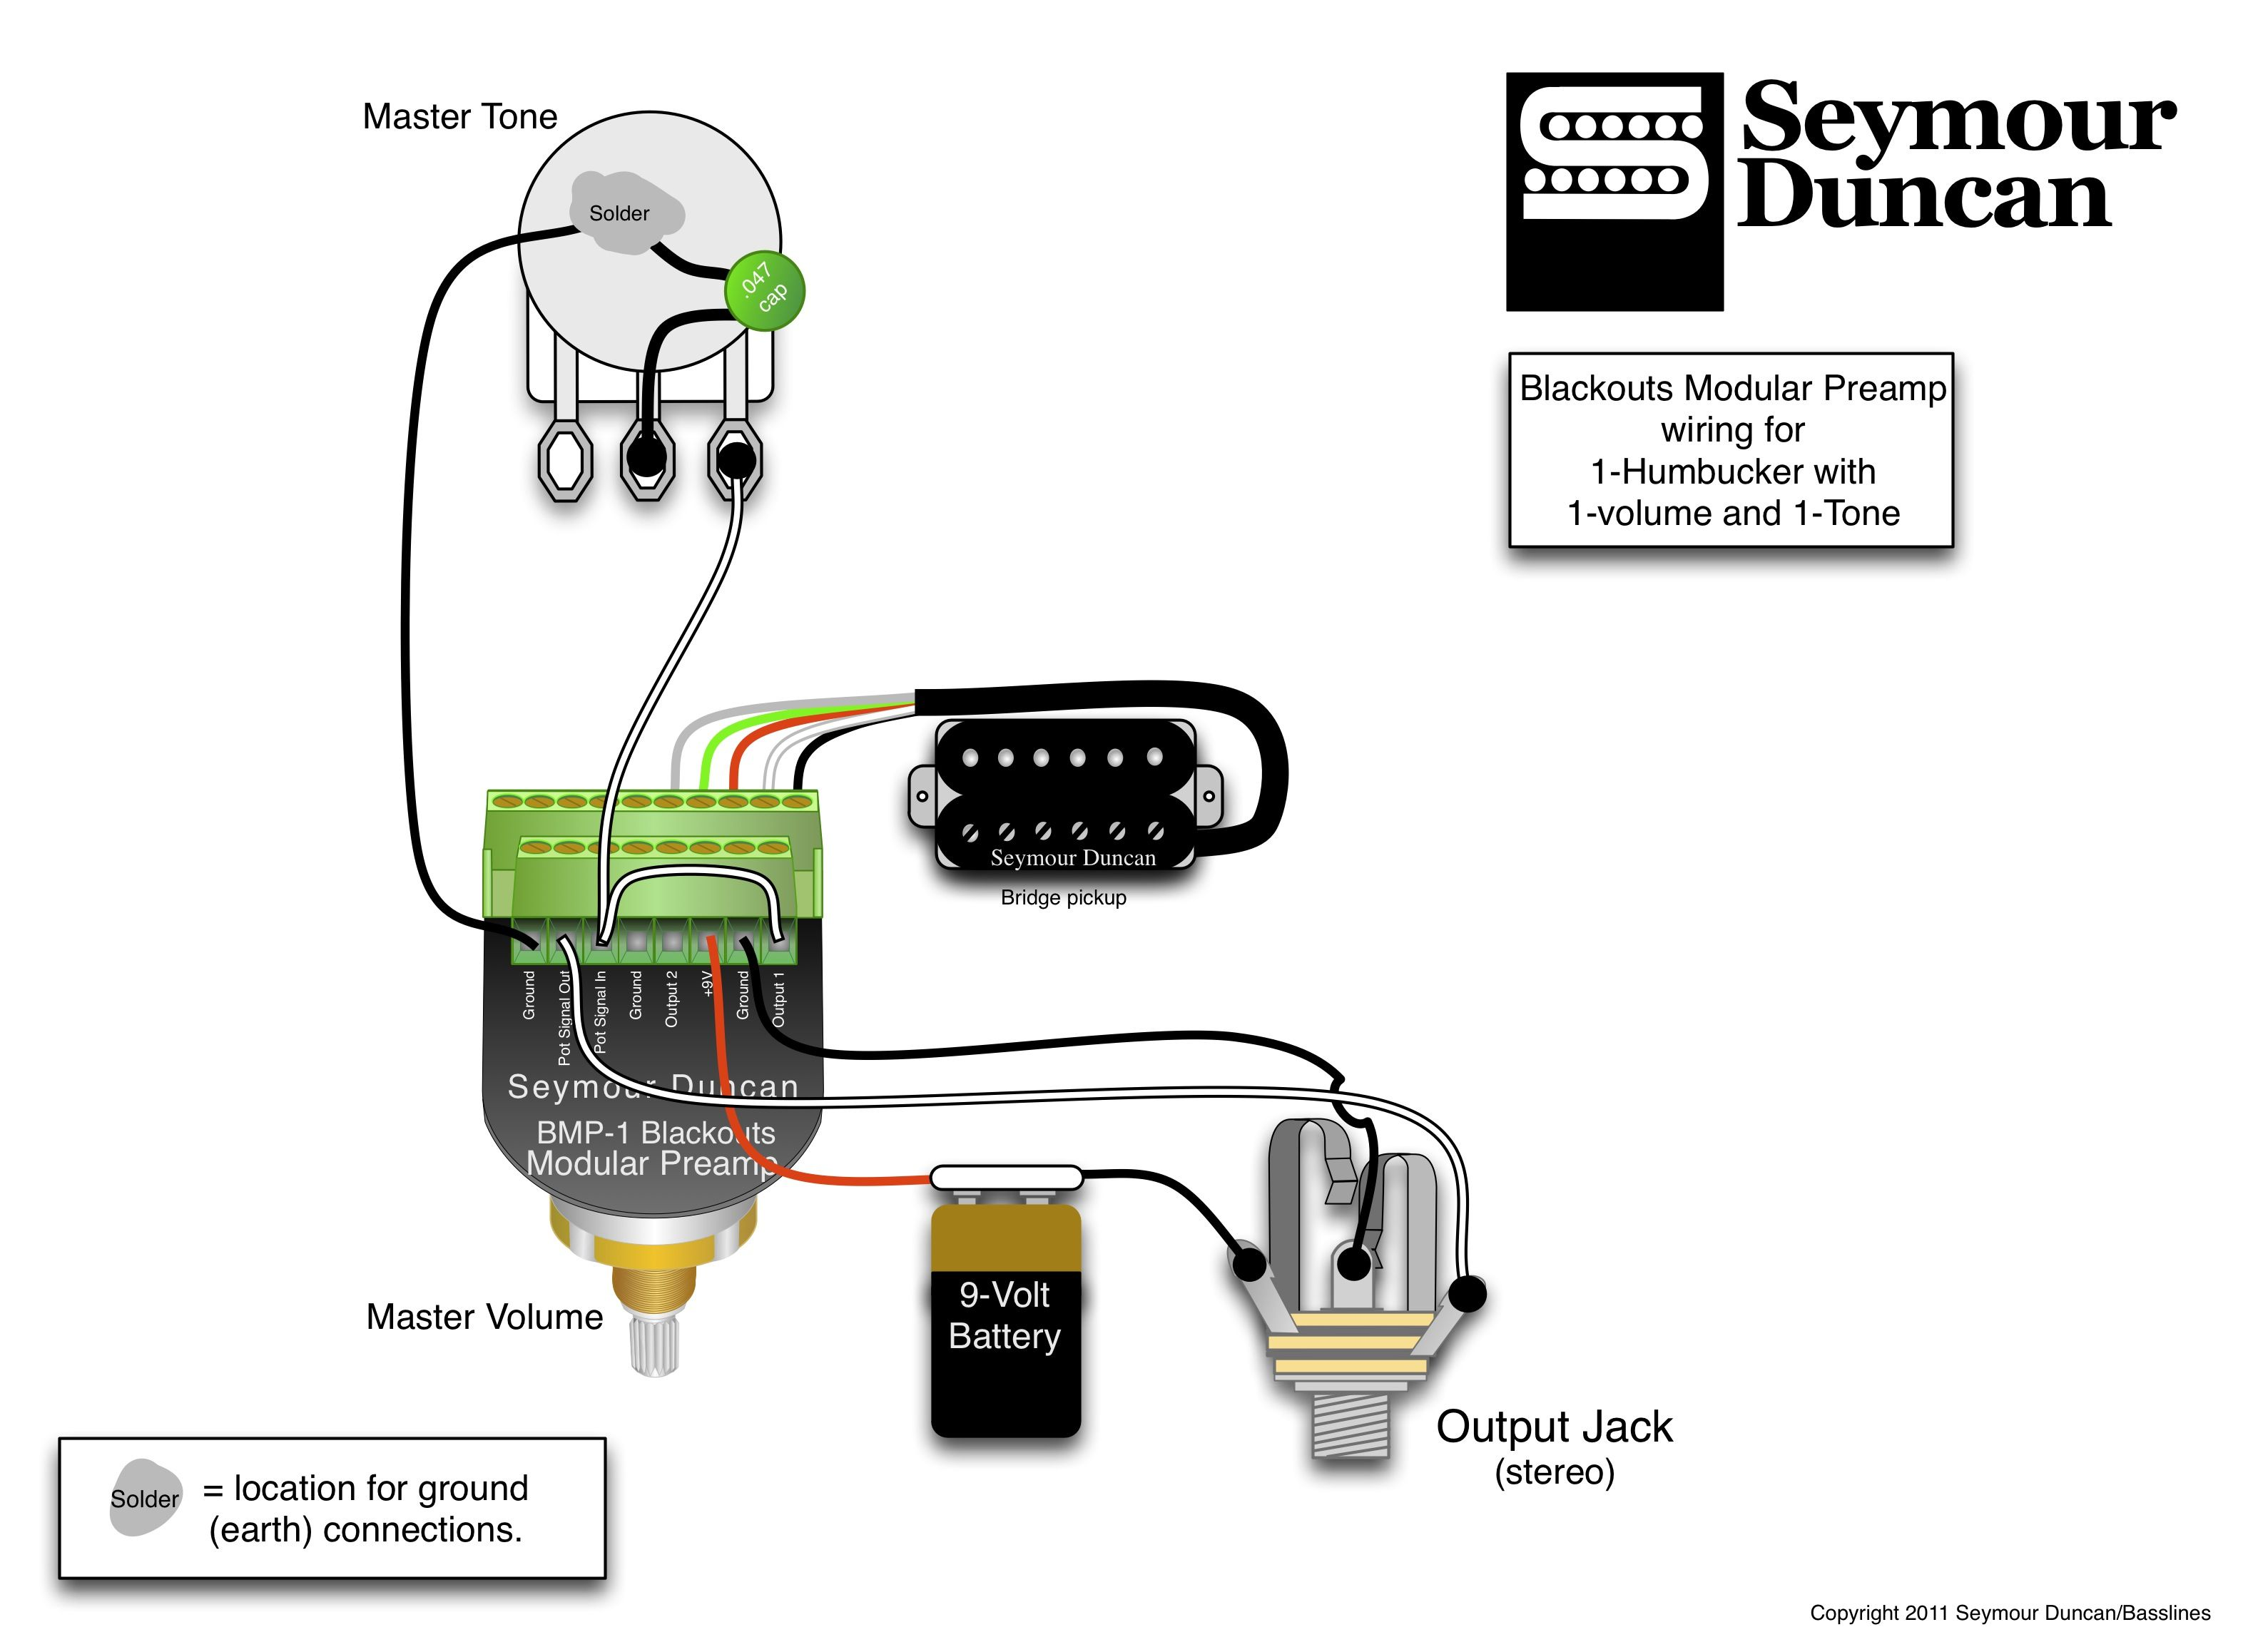 Screamin Demon Seymour Duncan Wiring Diagram